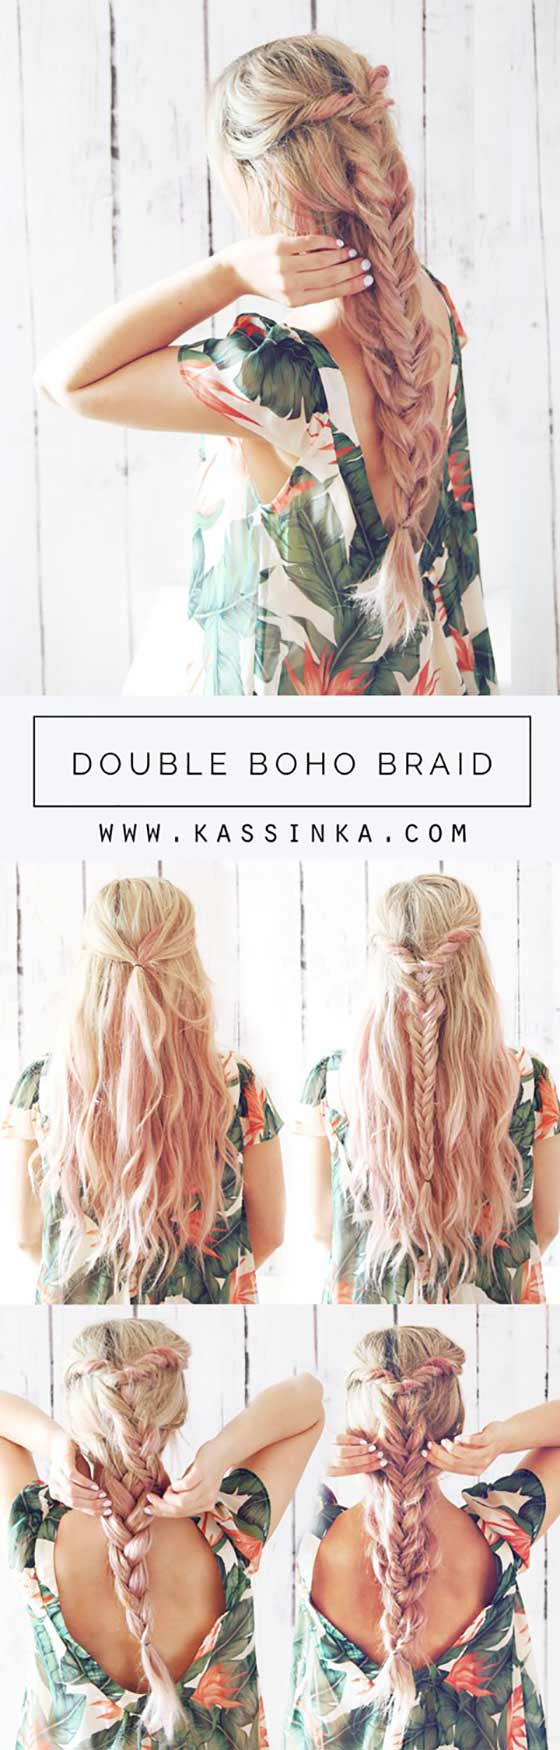 40 braided hairstyles for long hair double boho braid urmus Gallery